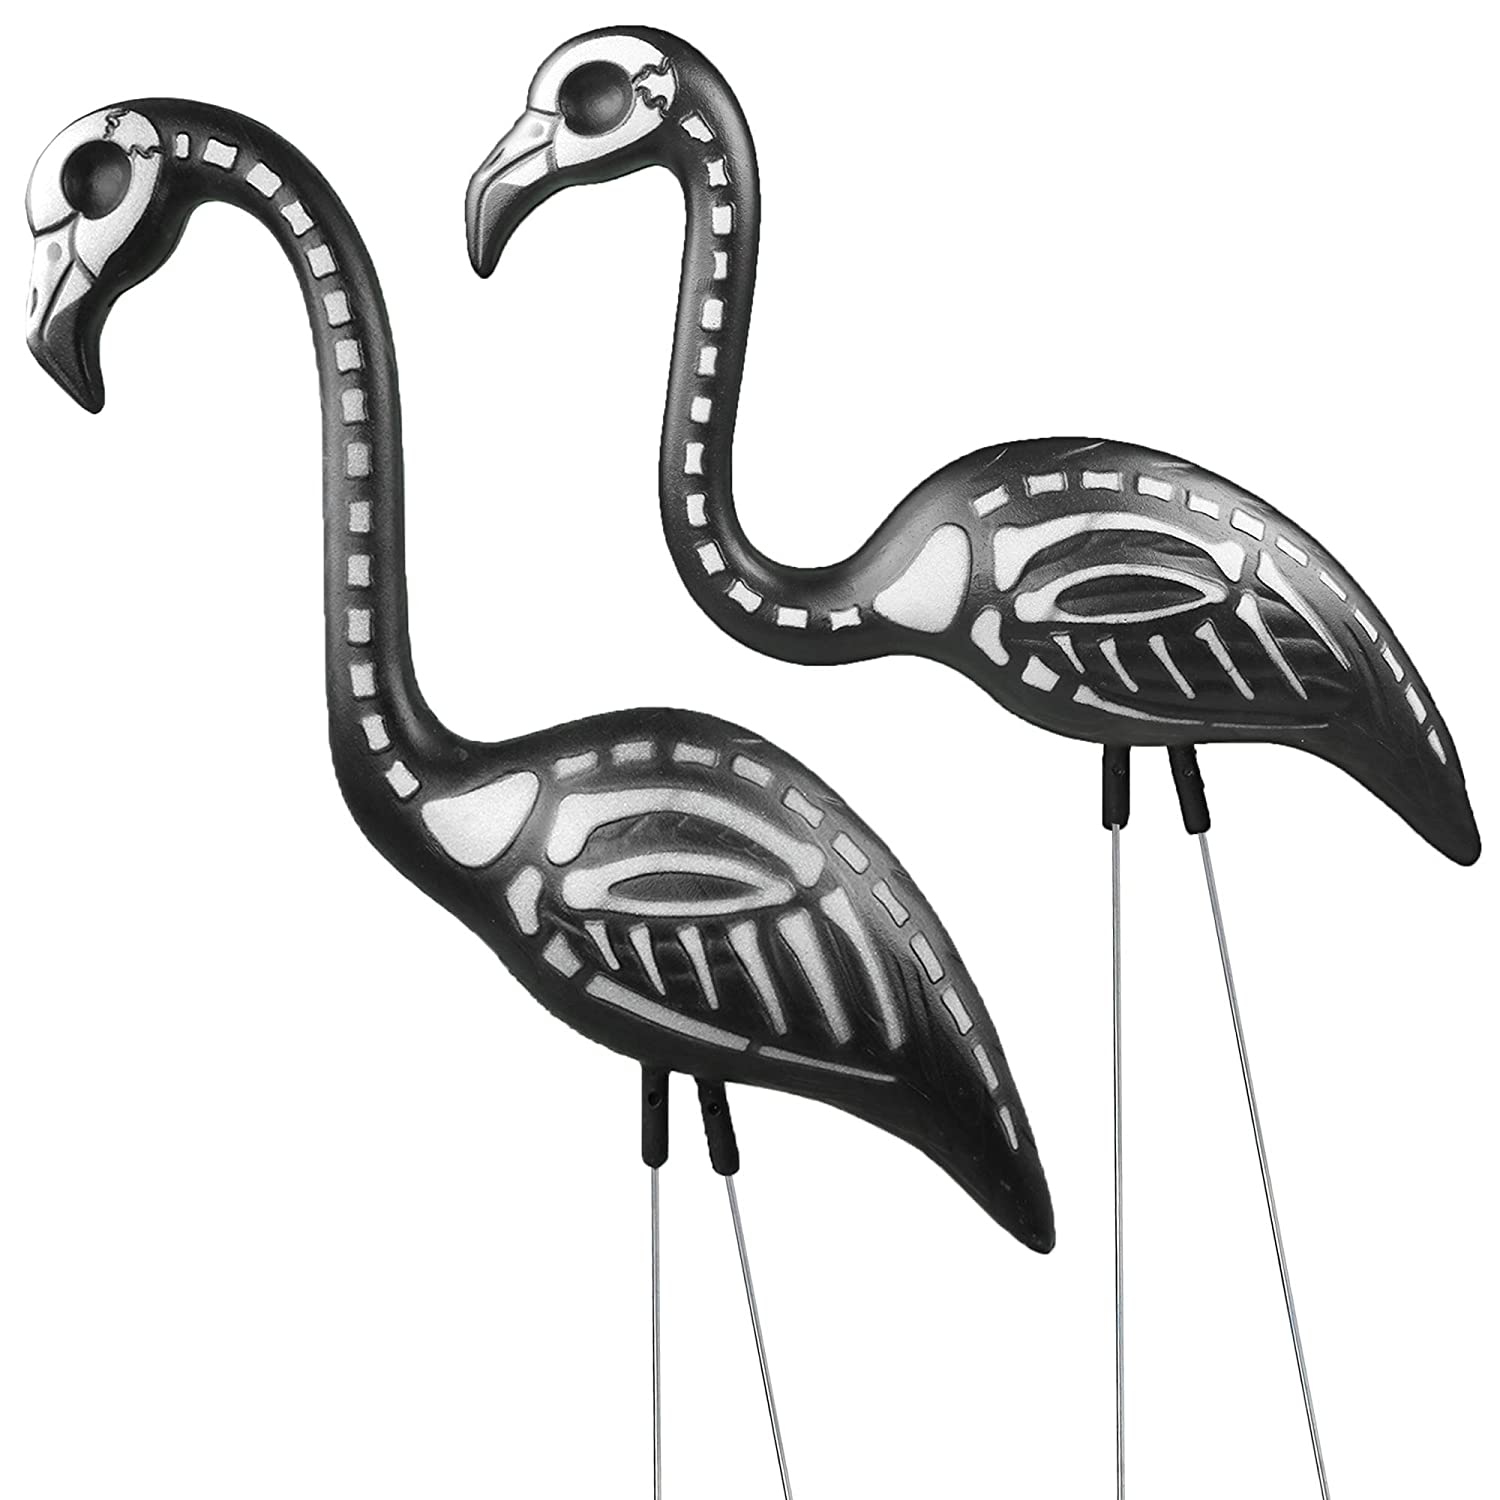 Skeleteen Zombie Skeleton Flamingo Yard Ornaments with Stakes, Pack of 2